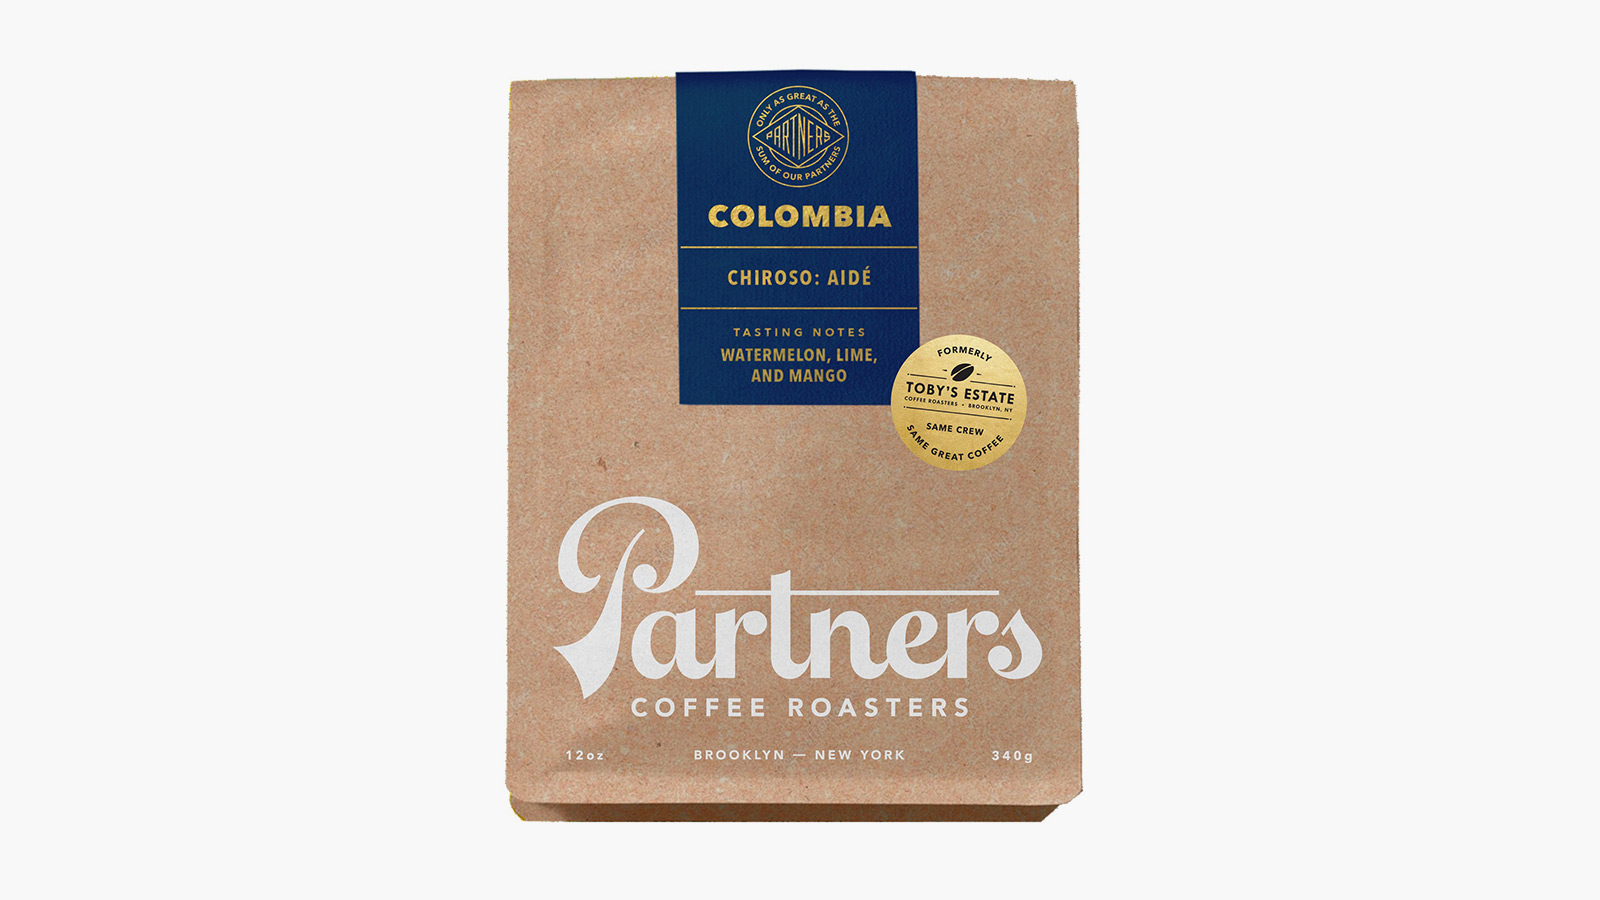 Partners Colombia - Chiroso: Aidé Coffee